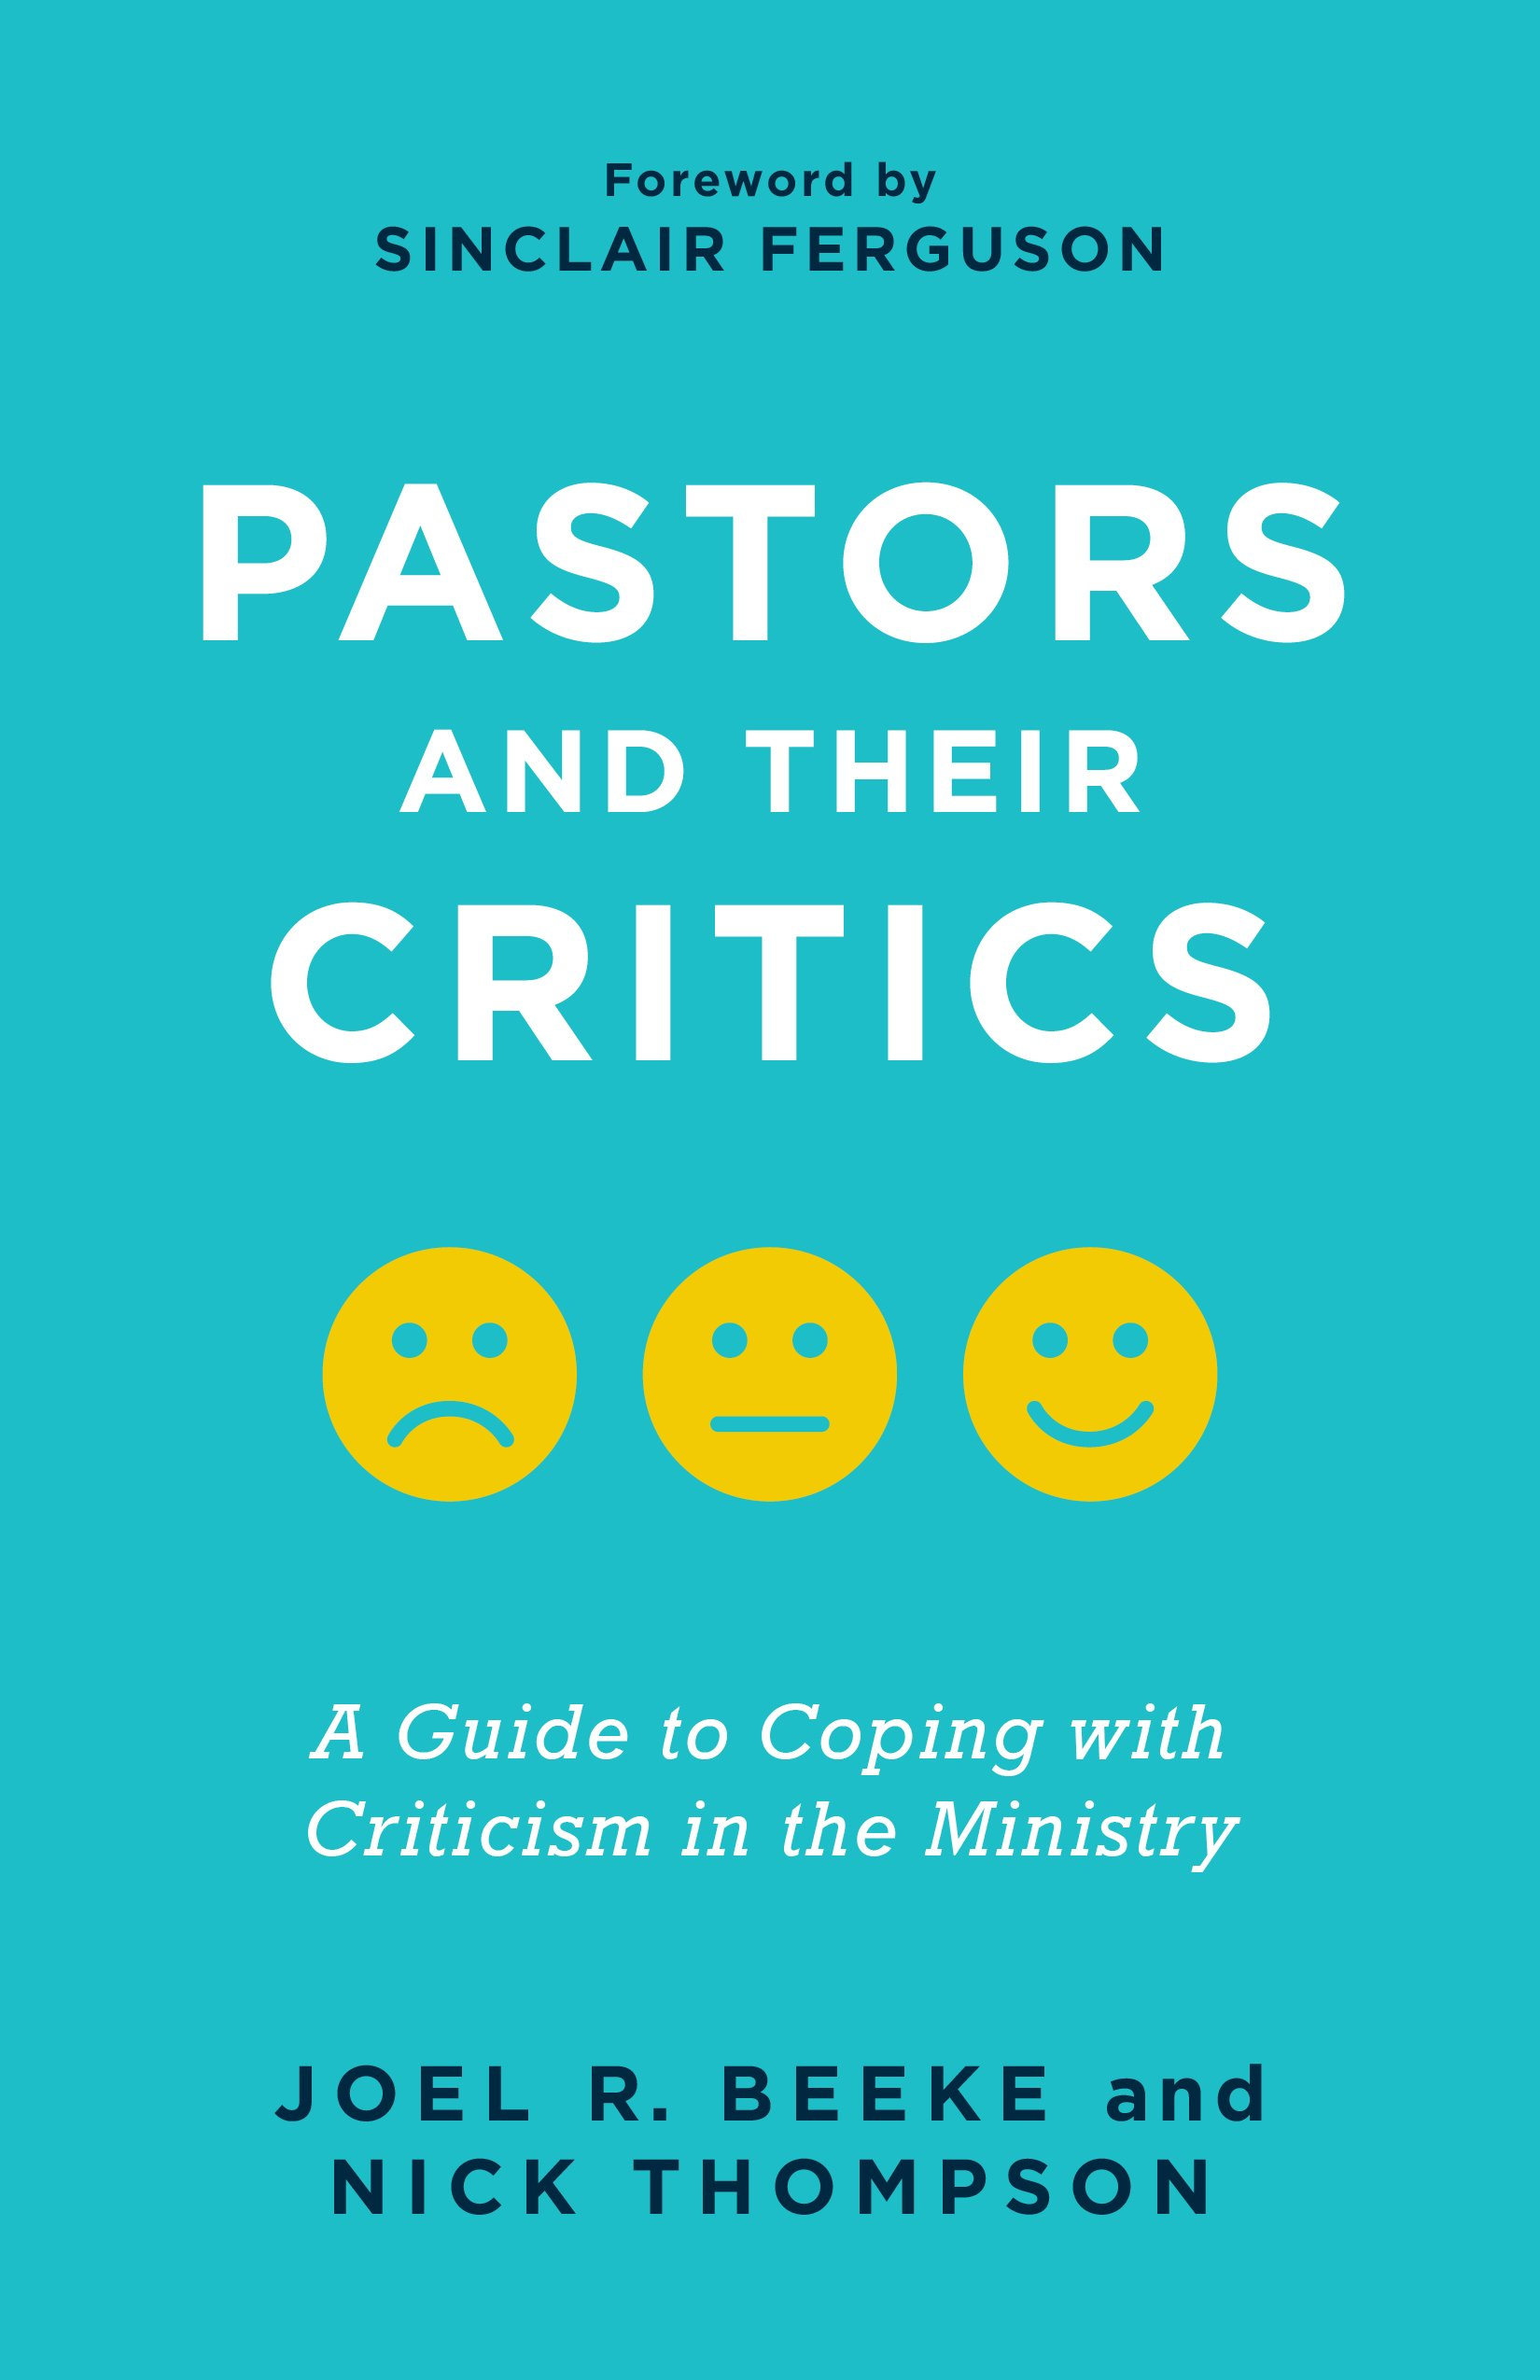 9781629957524-pastors-and-their-critics-a-guide-to-coping-with-criticism-in-the-ministry_1650x